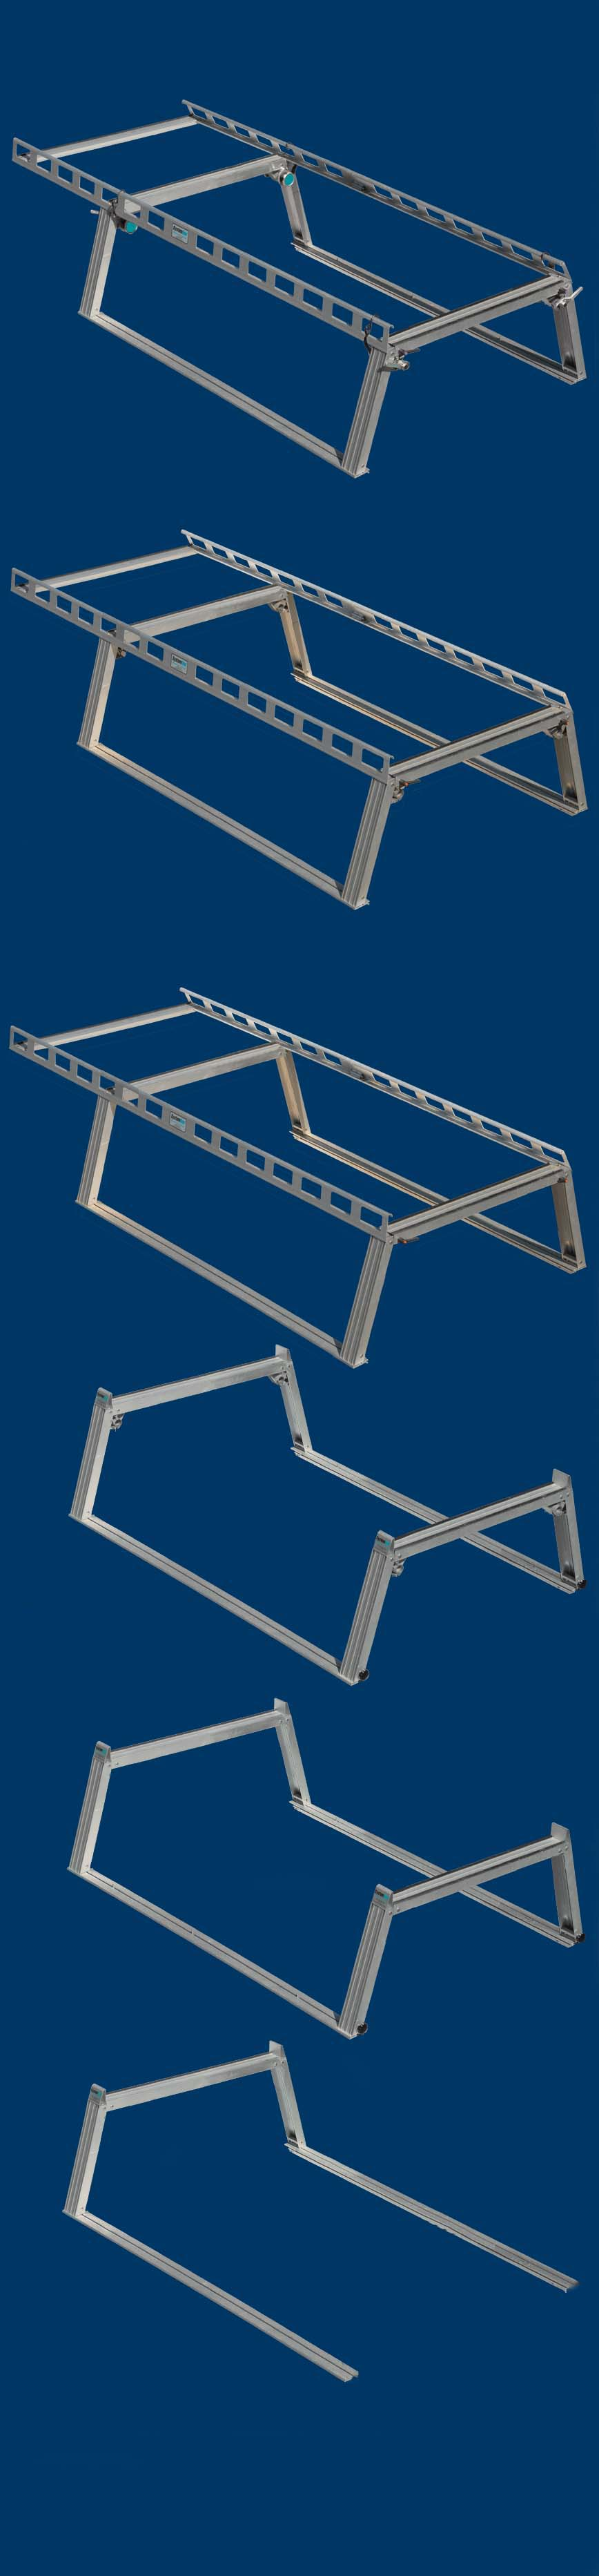 Pick up truck ladder rack overview